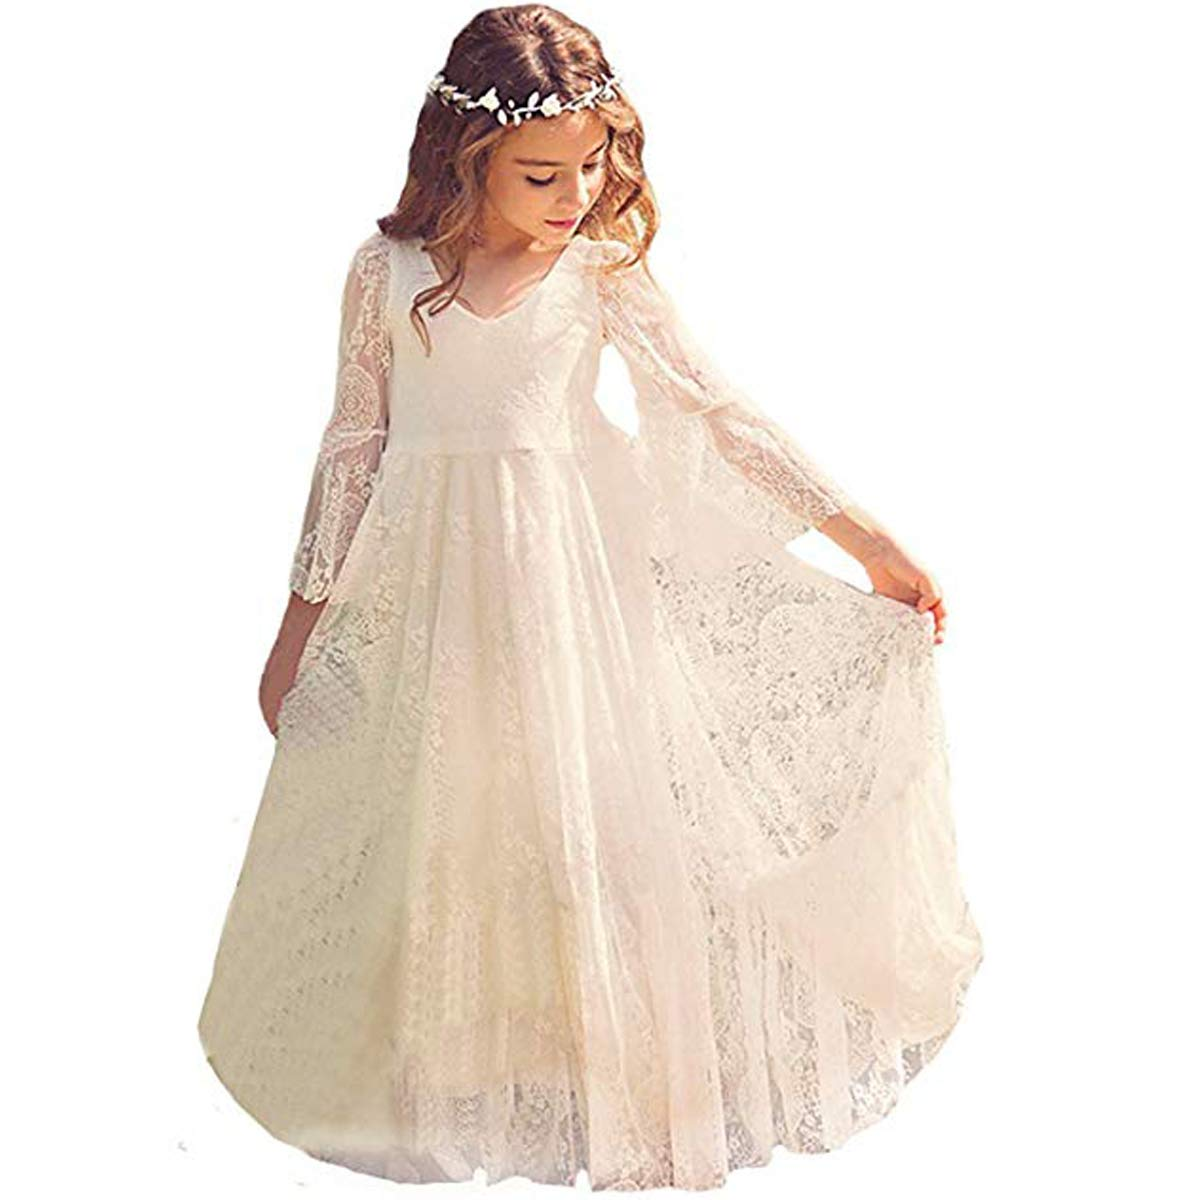 Victorian Kids Costumes & Shoes- Girls, Boys, Baby, Toddler CQDY Flower Girl Dress Lace Dress for Wedding White Ivory Dress Long Sleeve 2-15T $35.99 AT vintagedancer.com